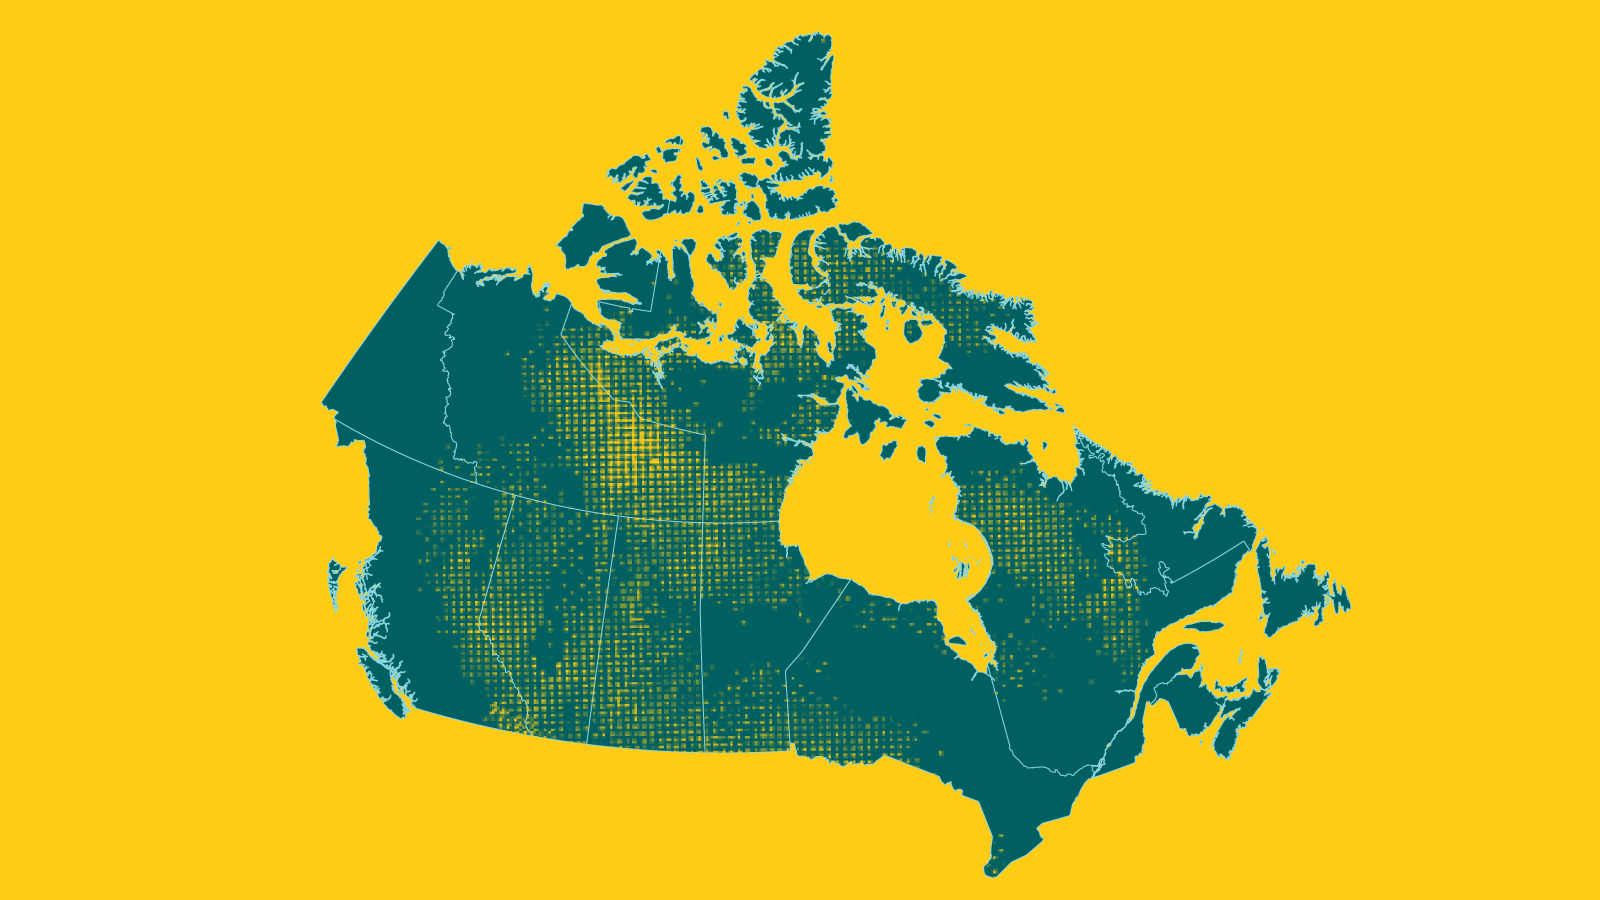 Map of Canada on yellow background.